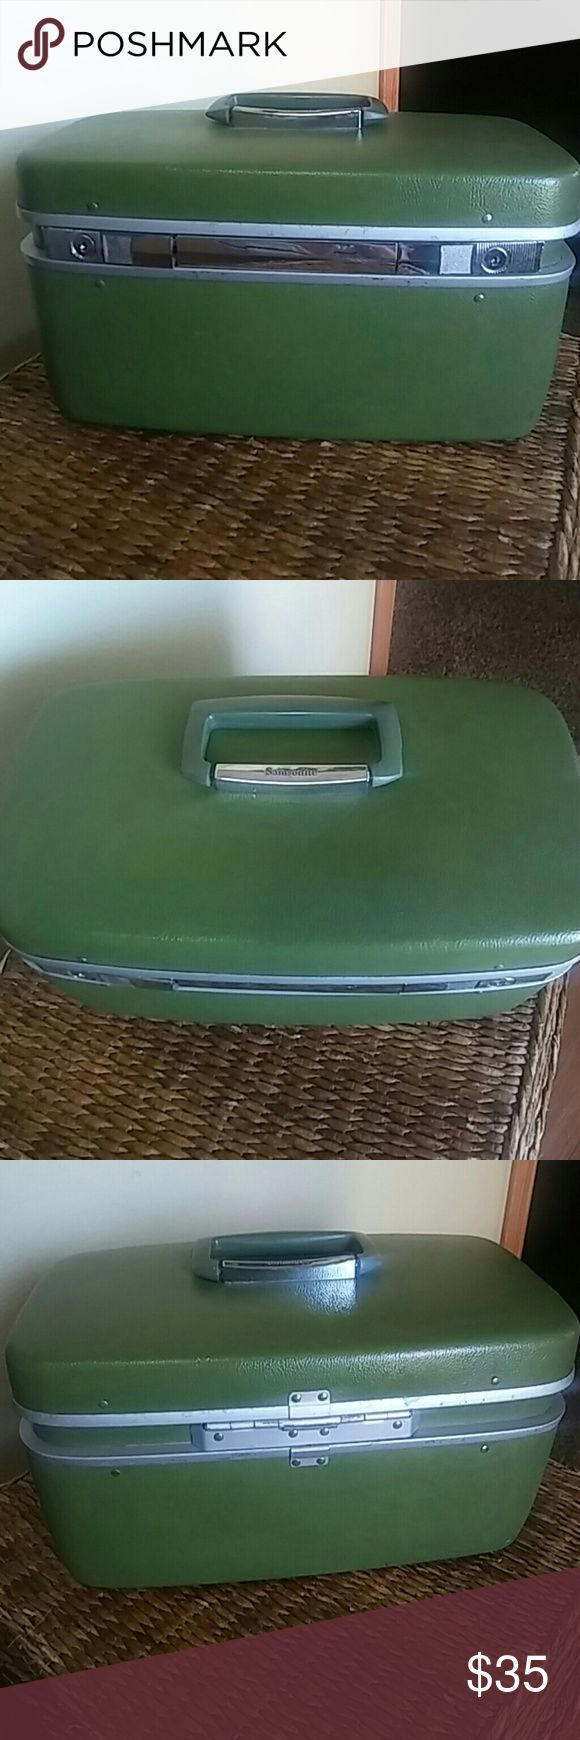 Vintage Samsonite Horizon Olive Train Make Up Case This a vintage (70's) Samsonite Horizon train case. Used condition. Missing tray and key. Some makeup staining inside, but still in good condition for its age. Very cool case. Samsonite Bags Travel Bags